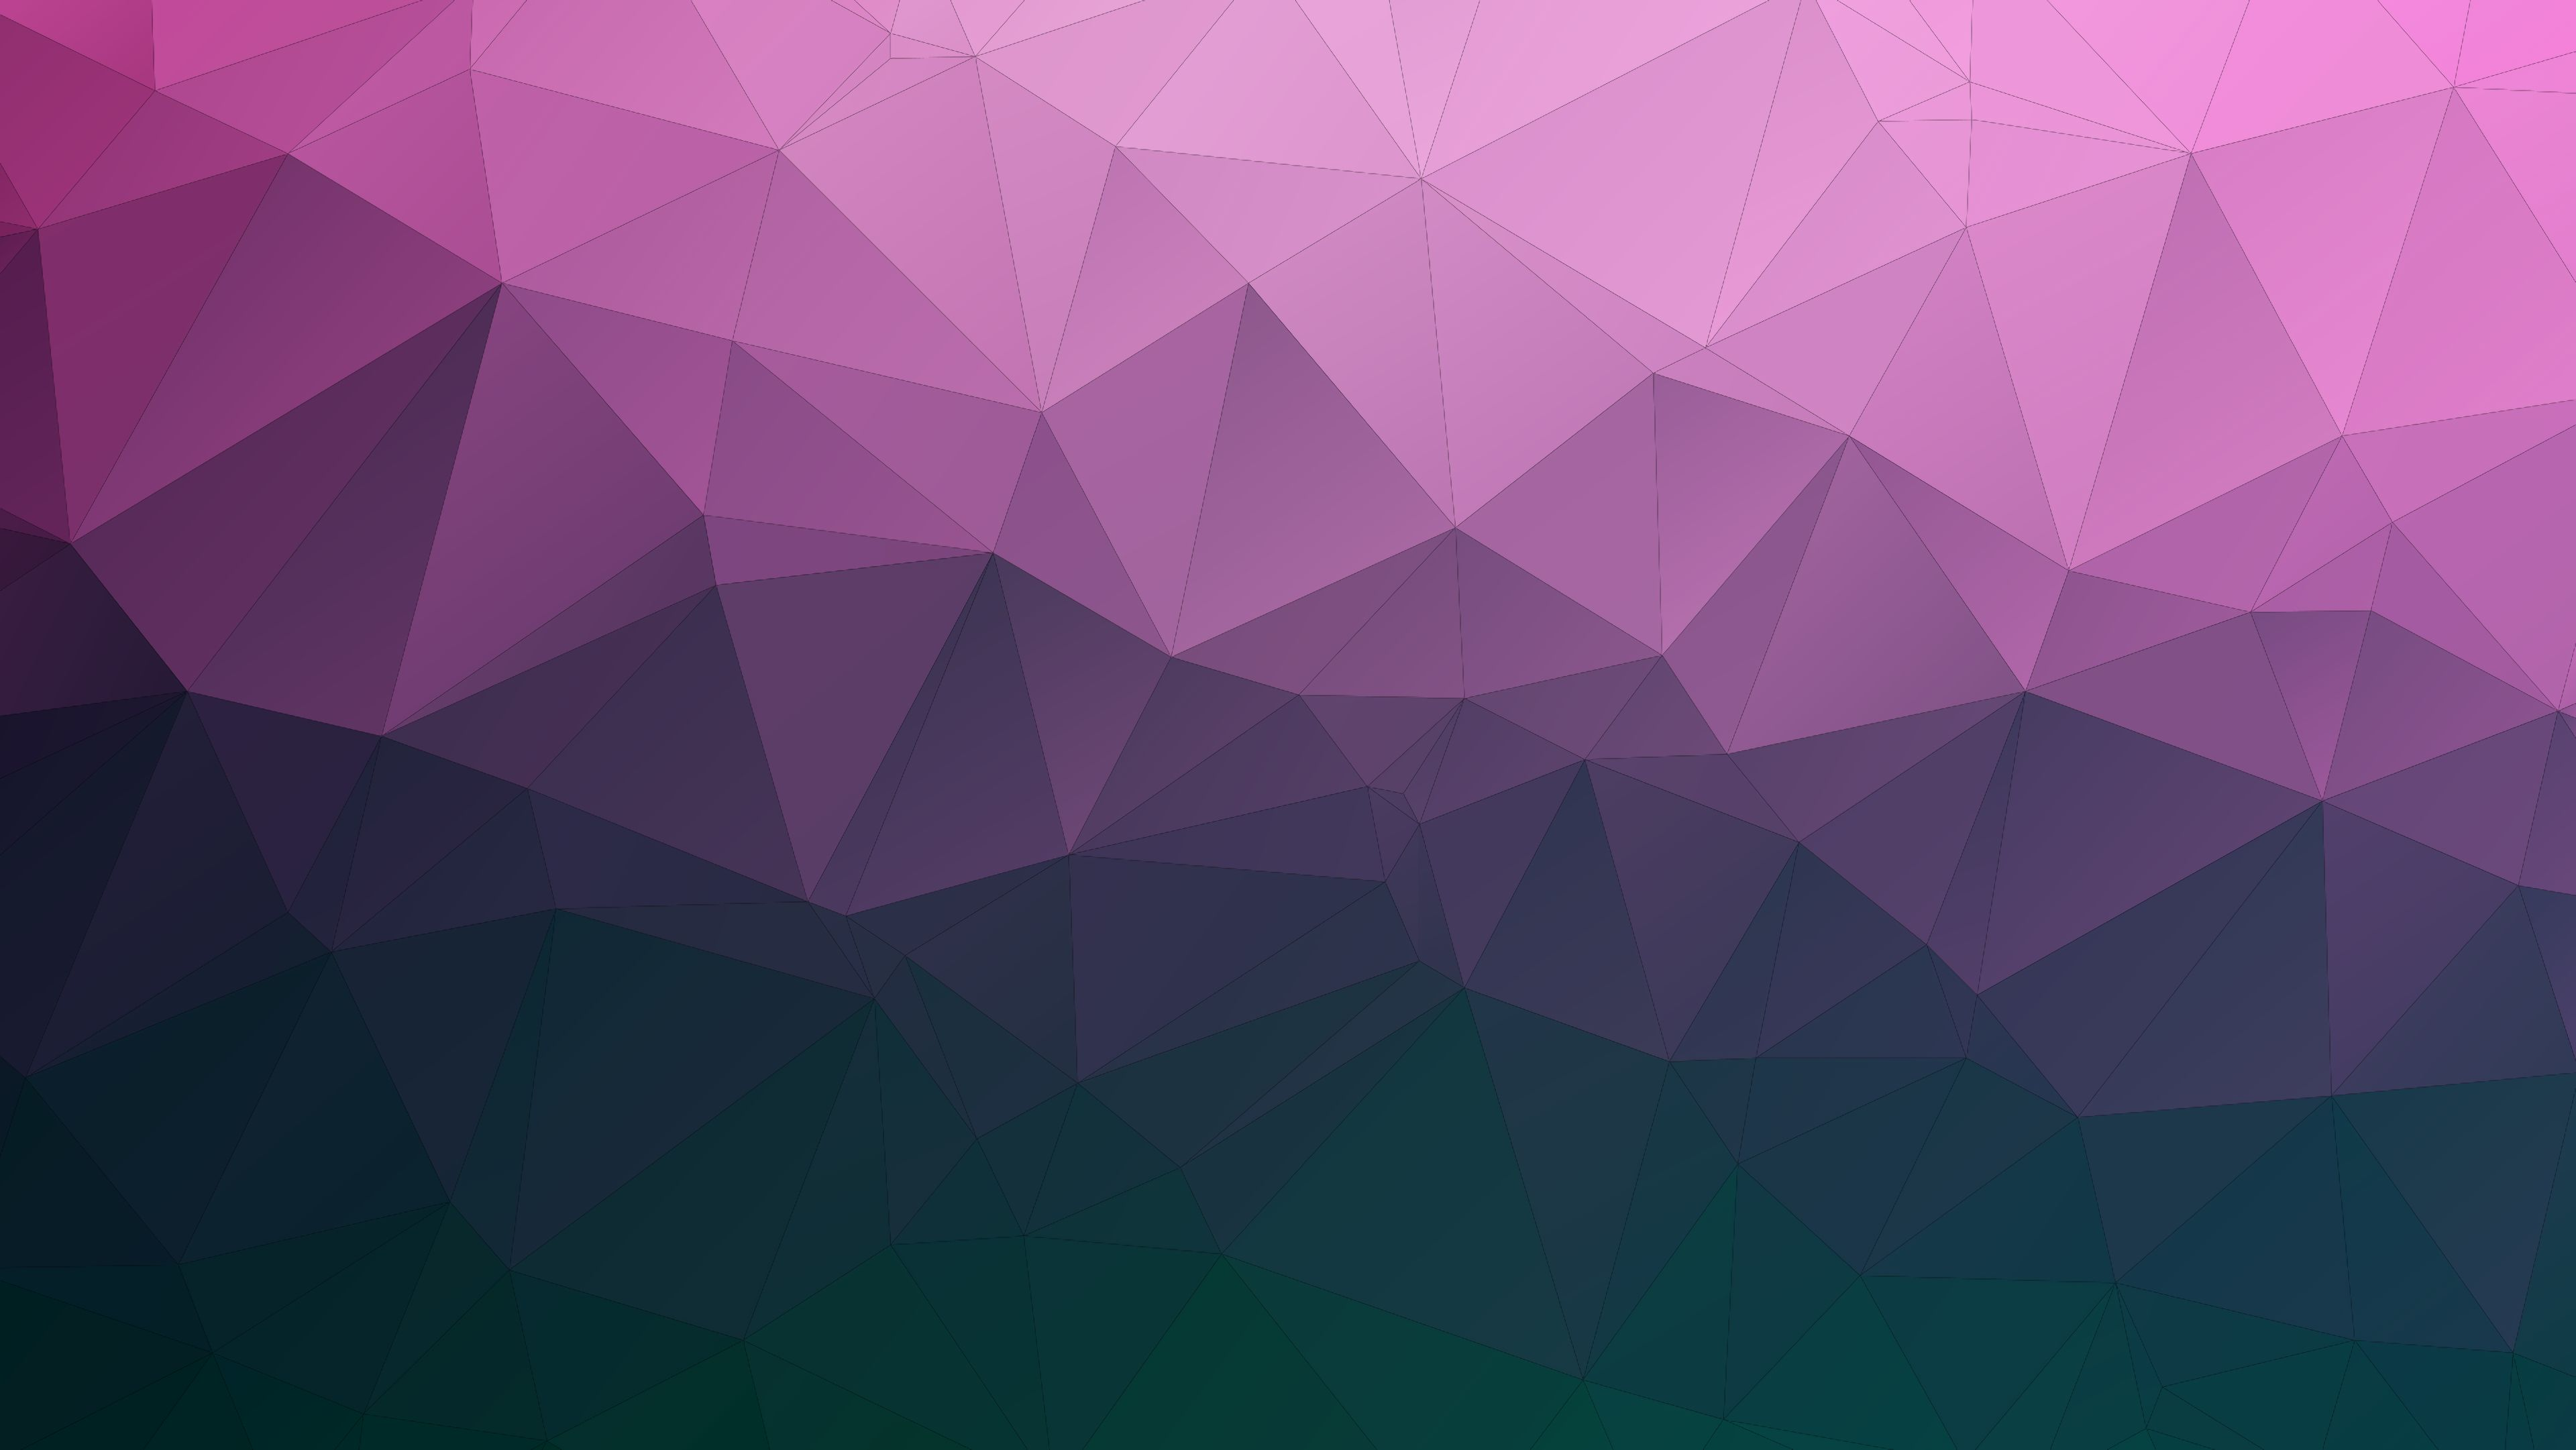 130596 download wallpaper Textures, Texture, Polygon, Triangles, Geometric, Gradient, Lines screensavers and pictures for free